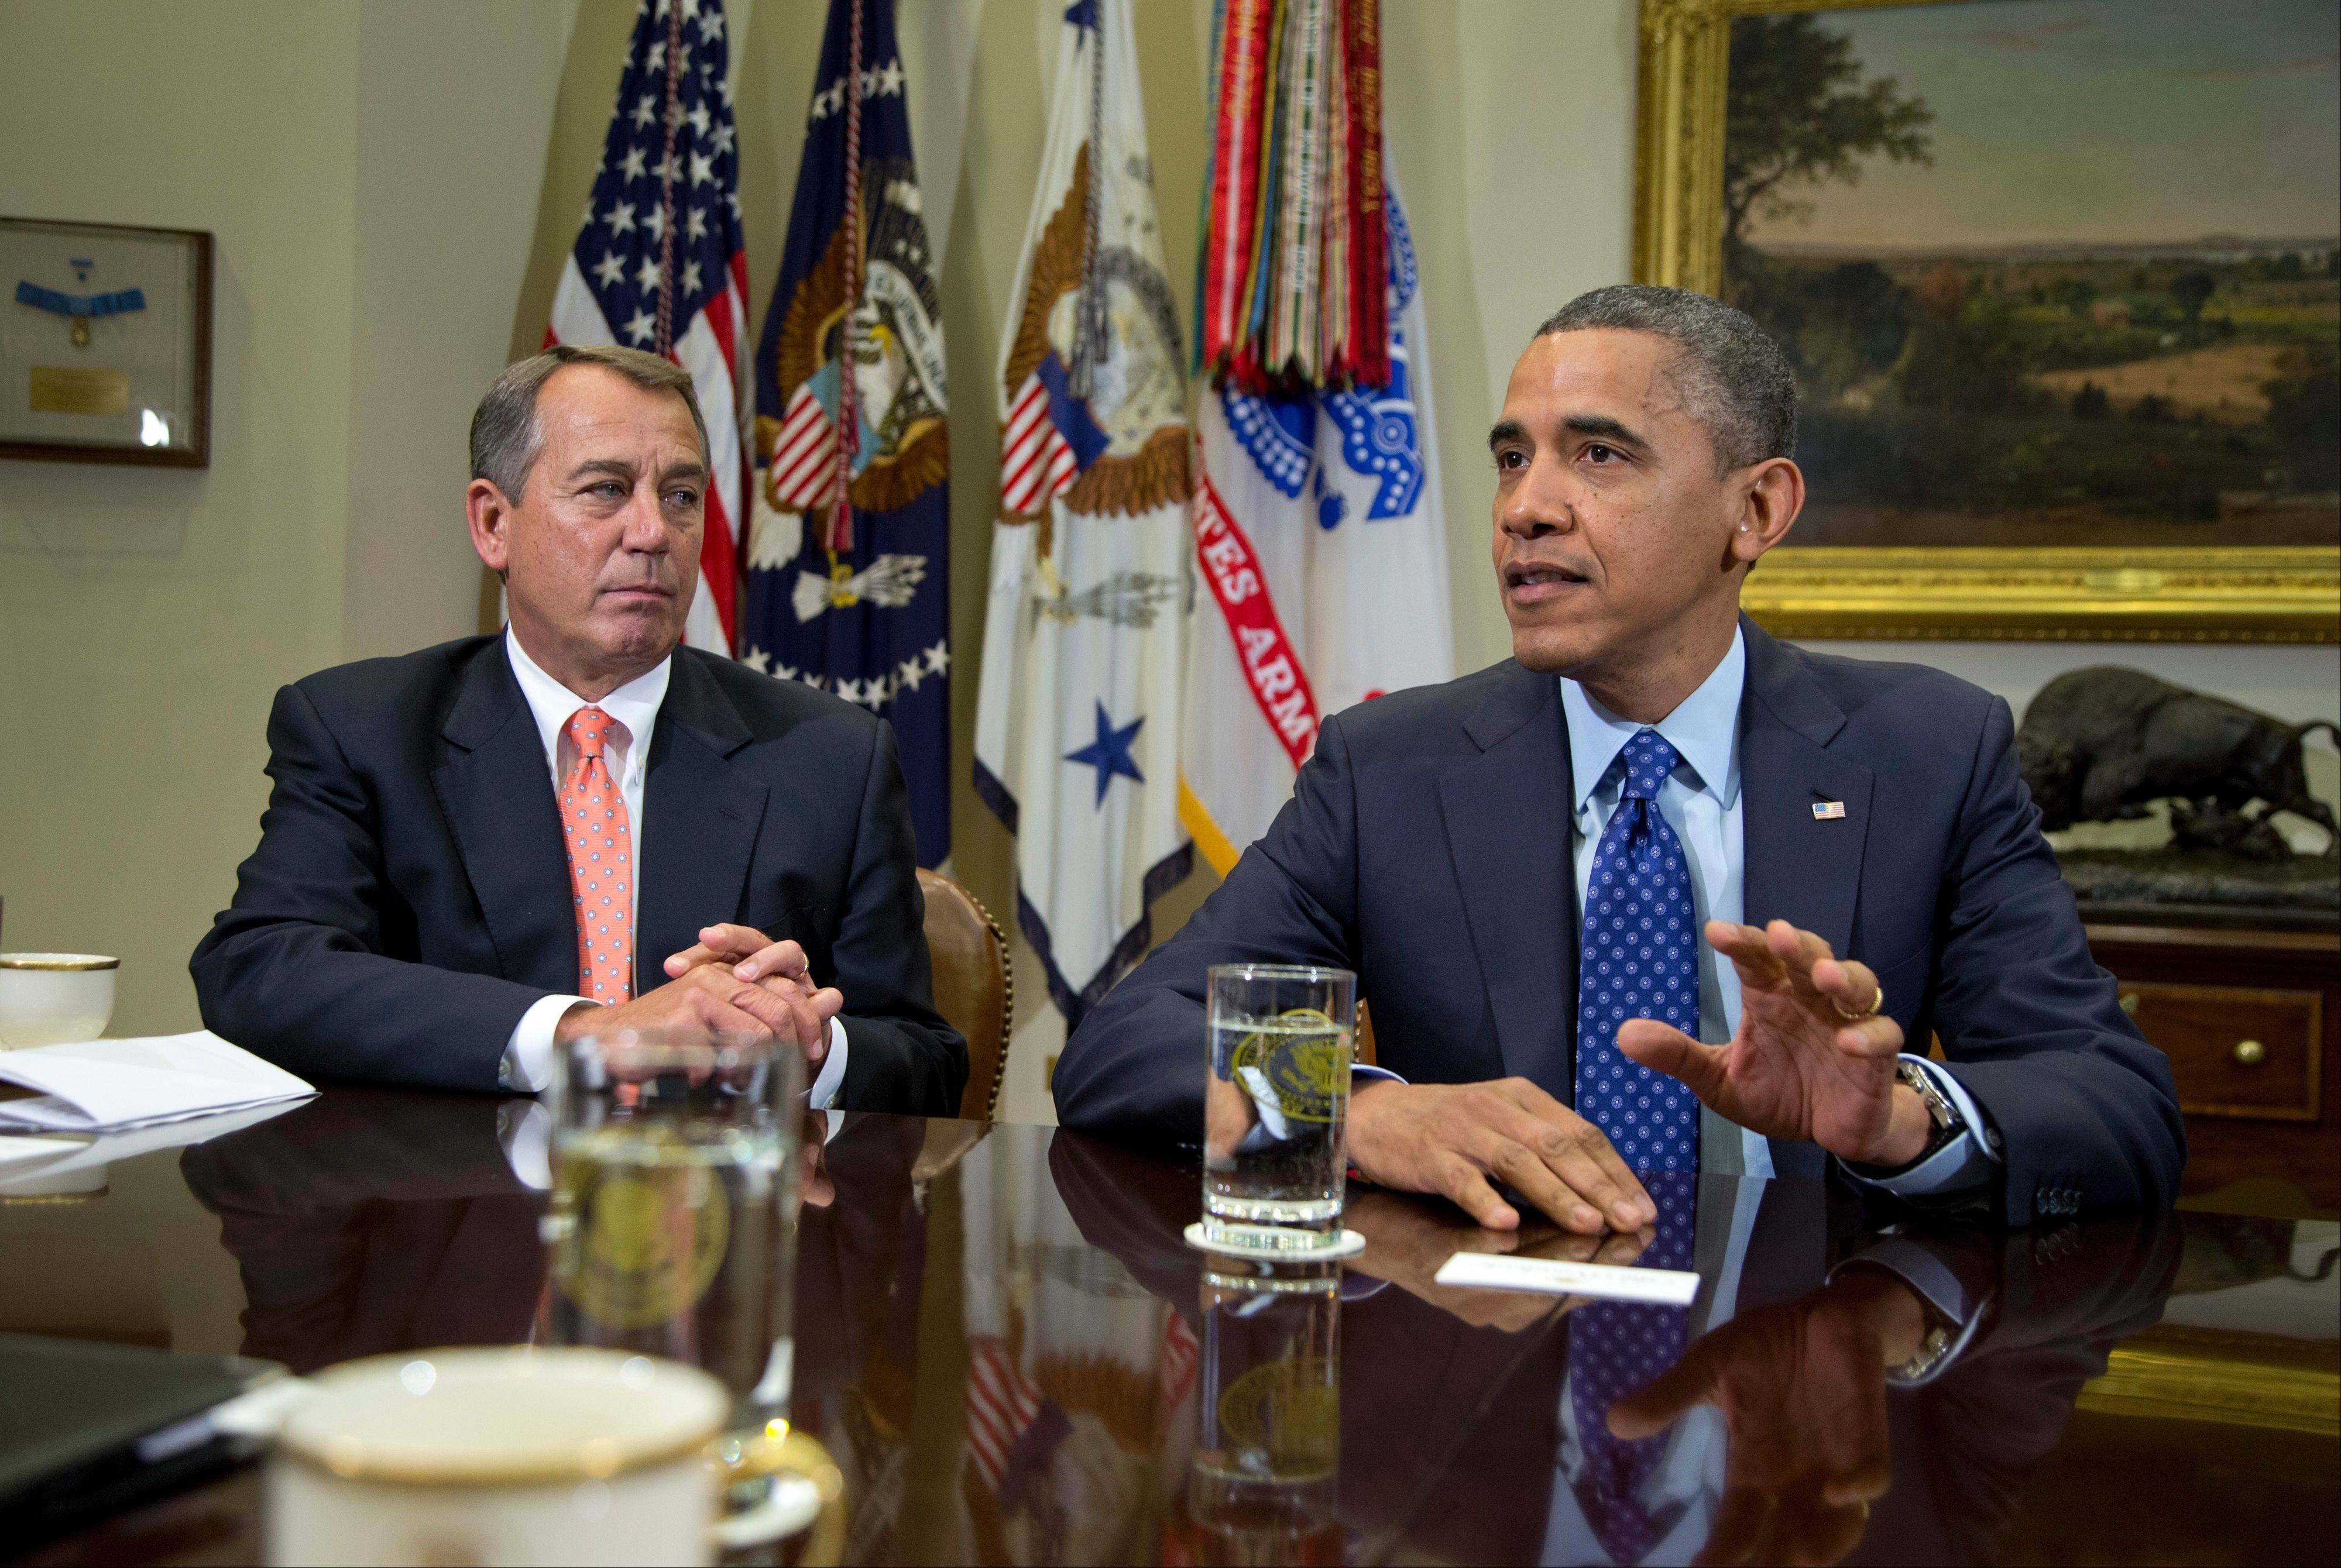 President Barack Obama, accompanied by House Speaker John Boehner of Ohio, speaks to reporters in the Roosevelt Room of the White House in Washington as he hosted a meeting of the bipartisan, bicameral leadership of Congress to discuss the deficit and economy.